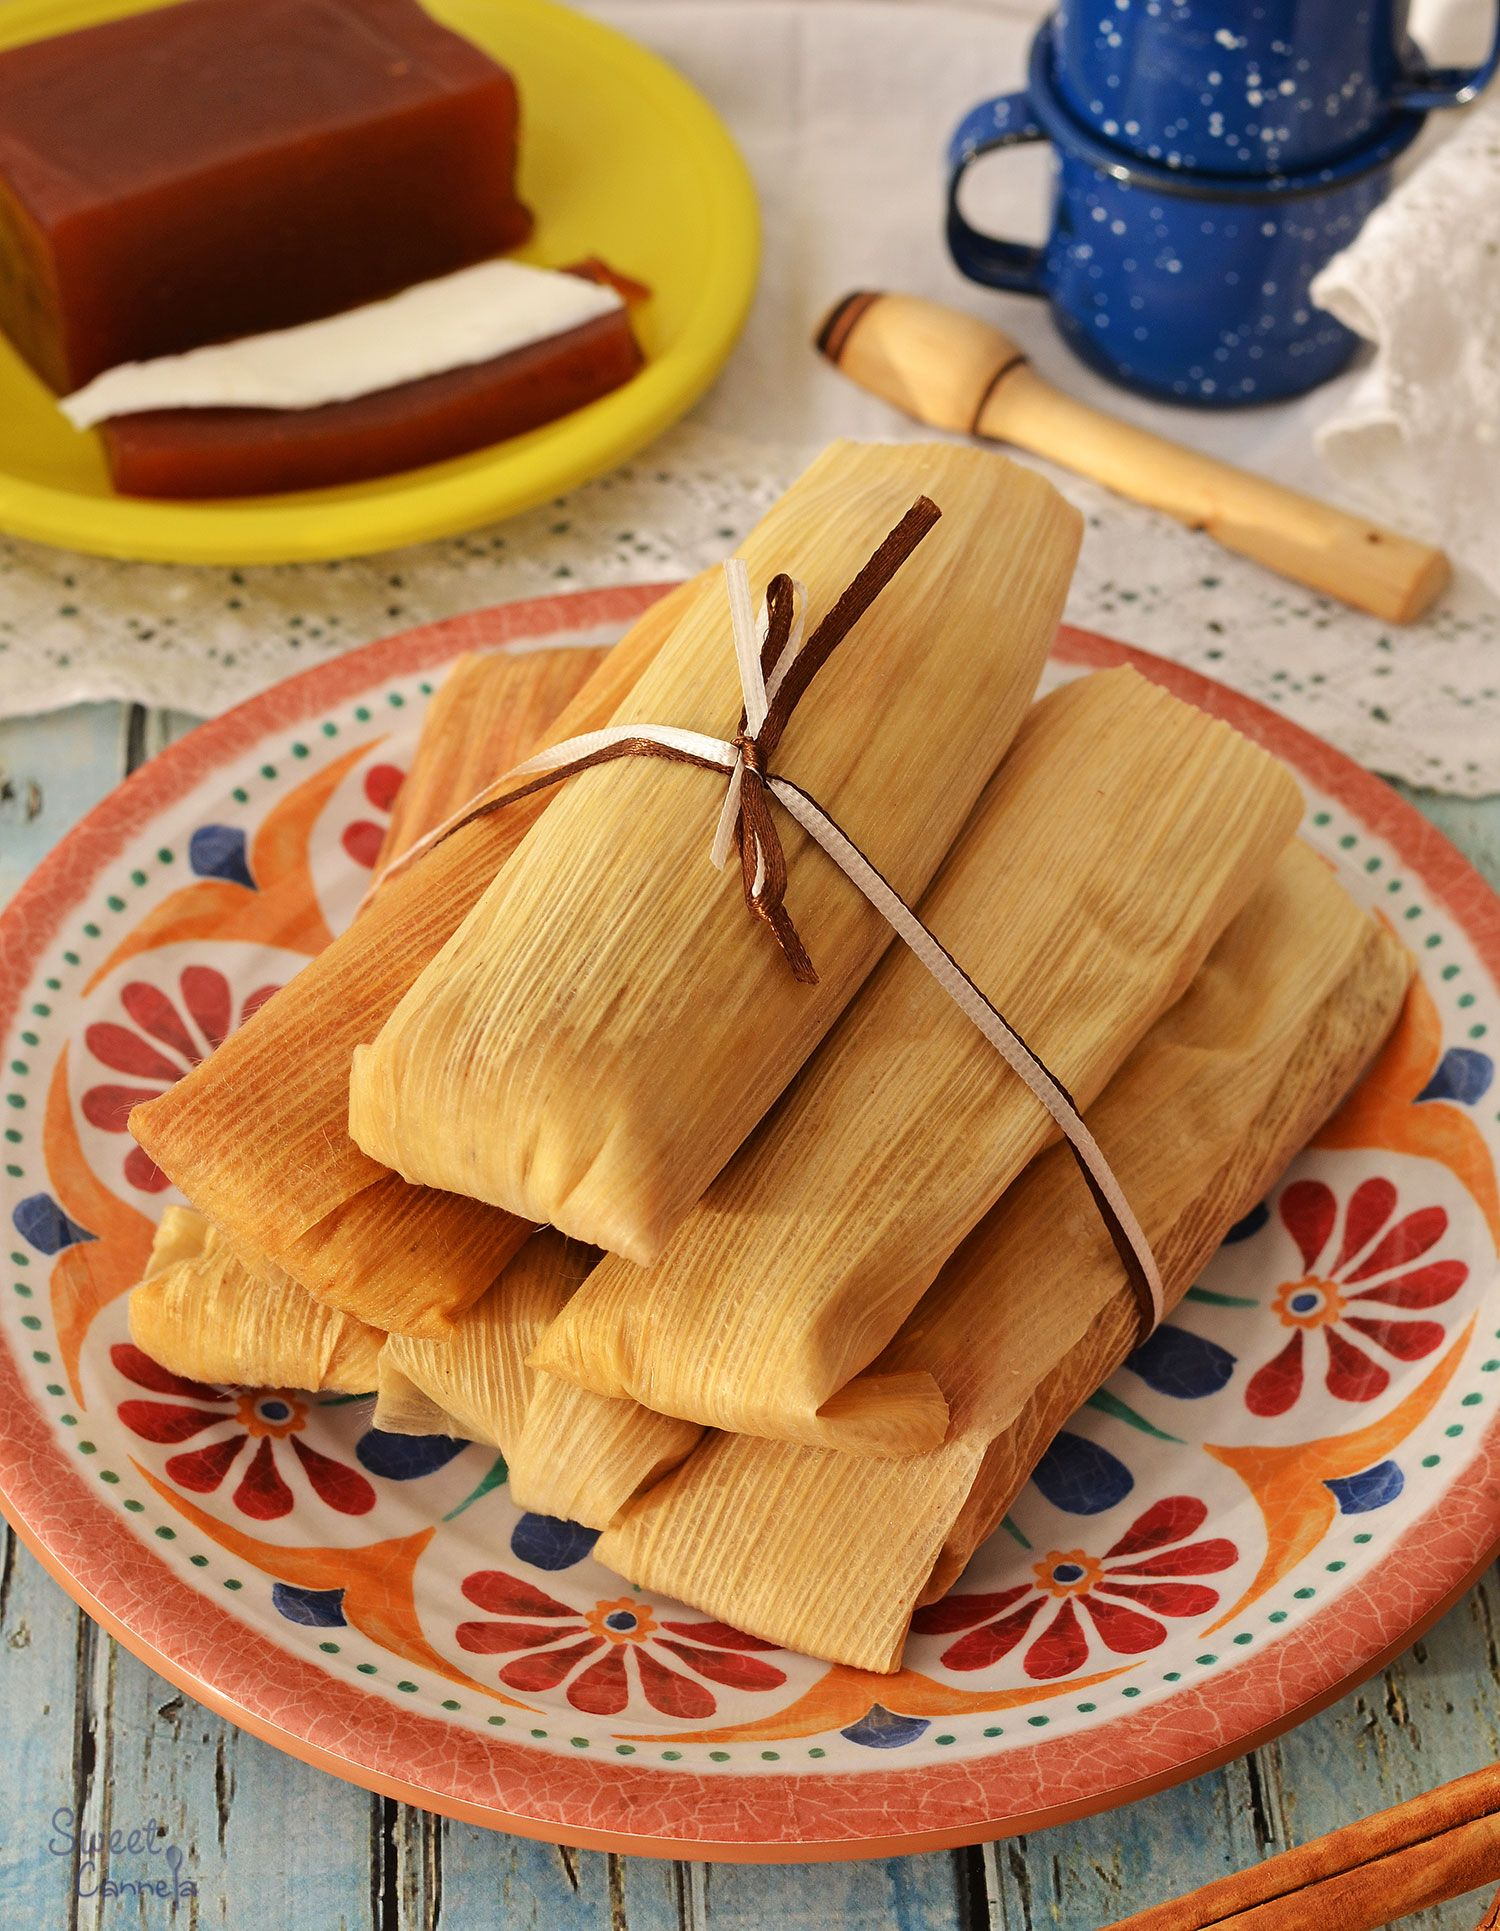 Sweet tamales with quince paste and fresh cheese are delicious, soft and fluffy. Of course the best pairing is a hot cup of atole.